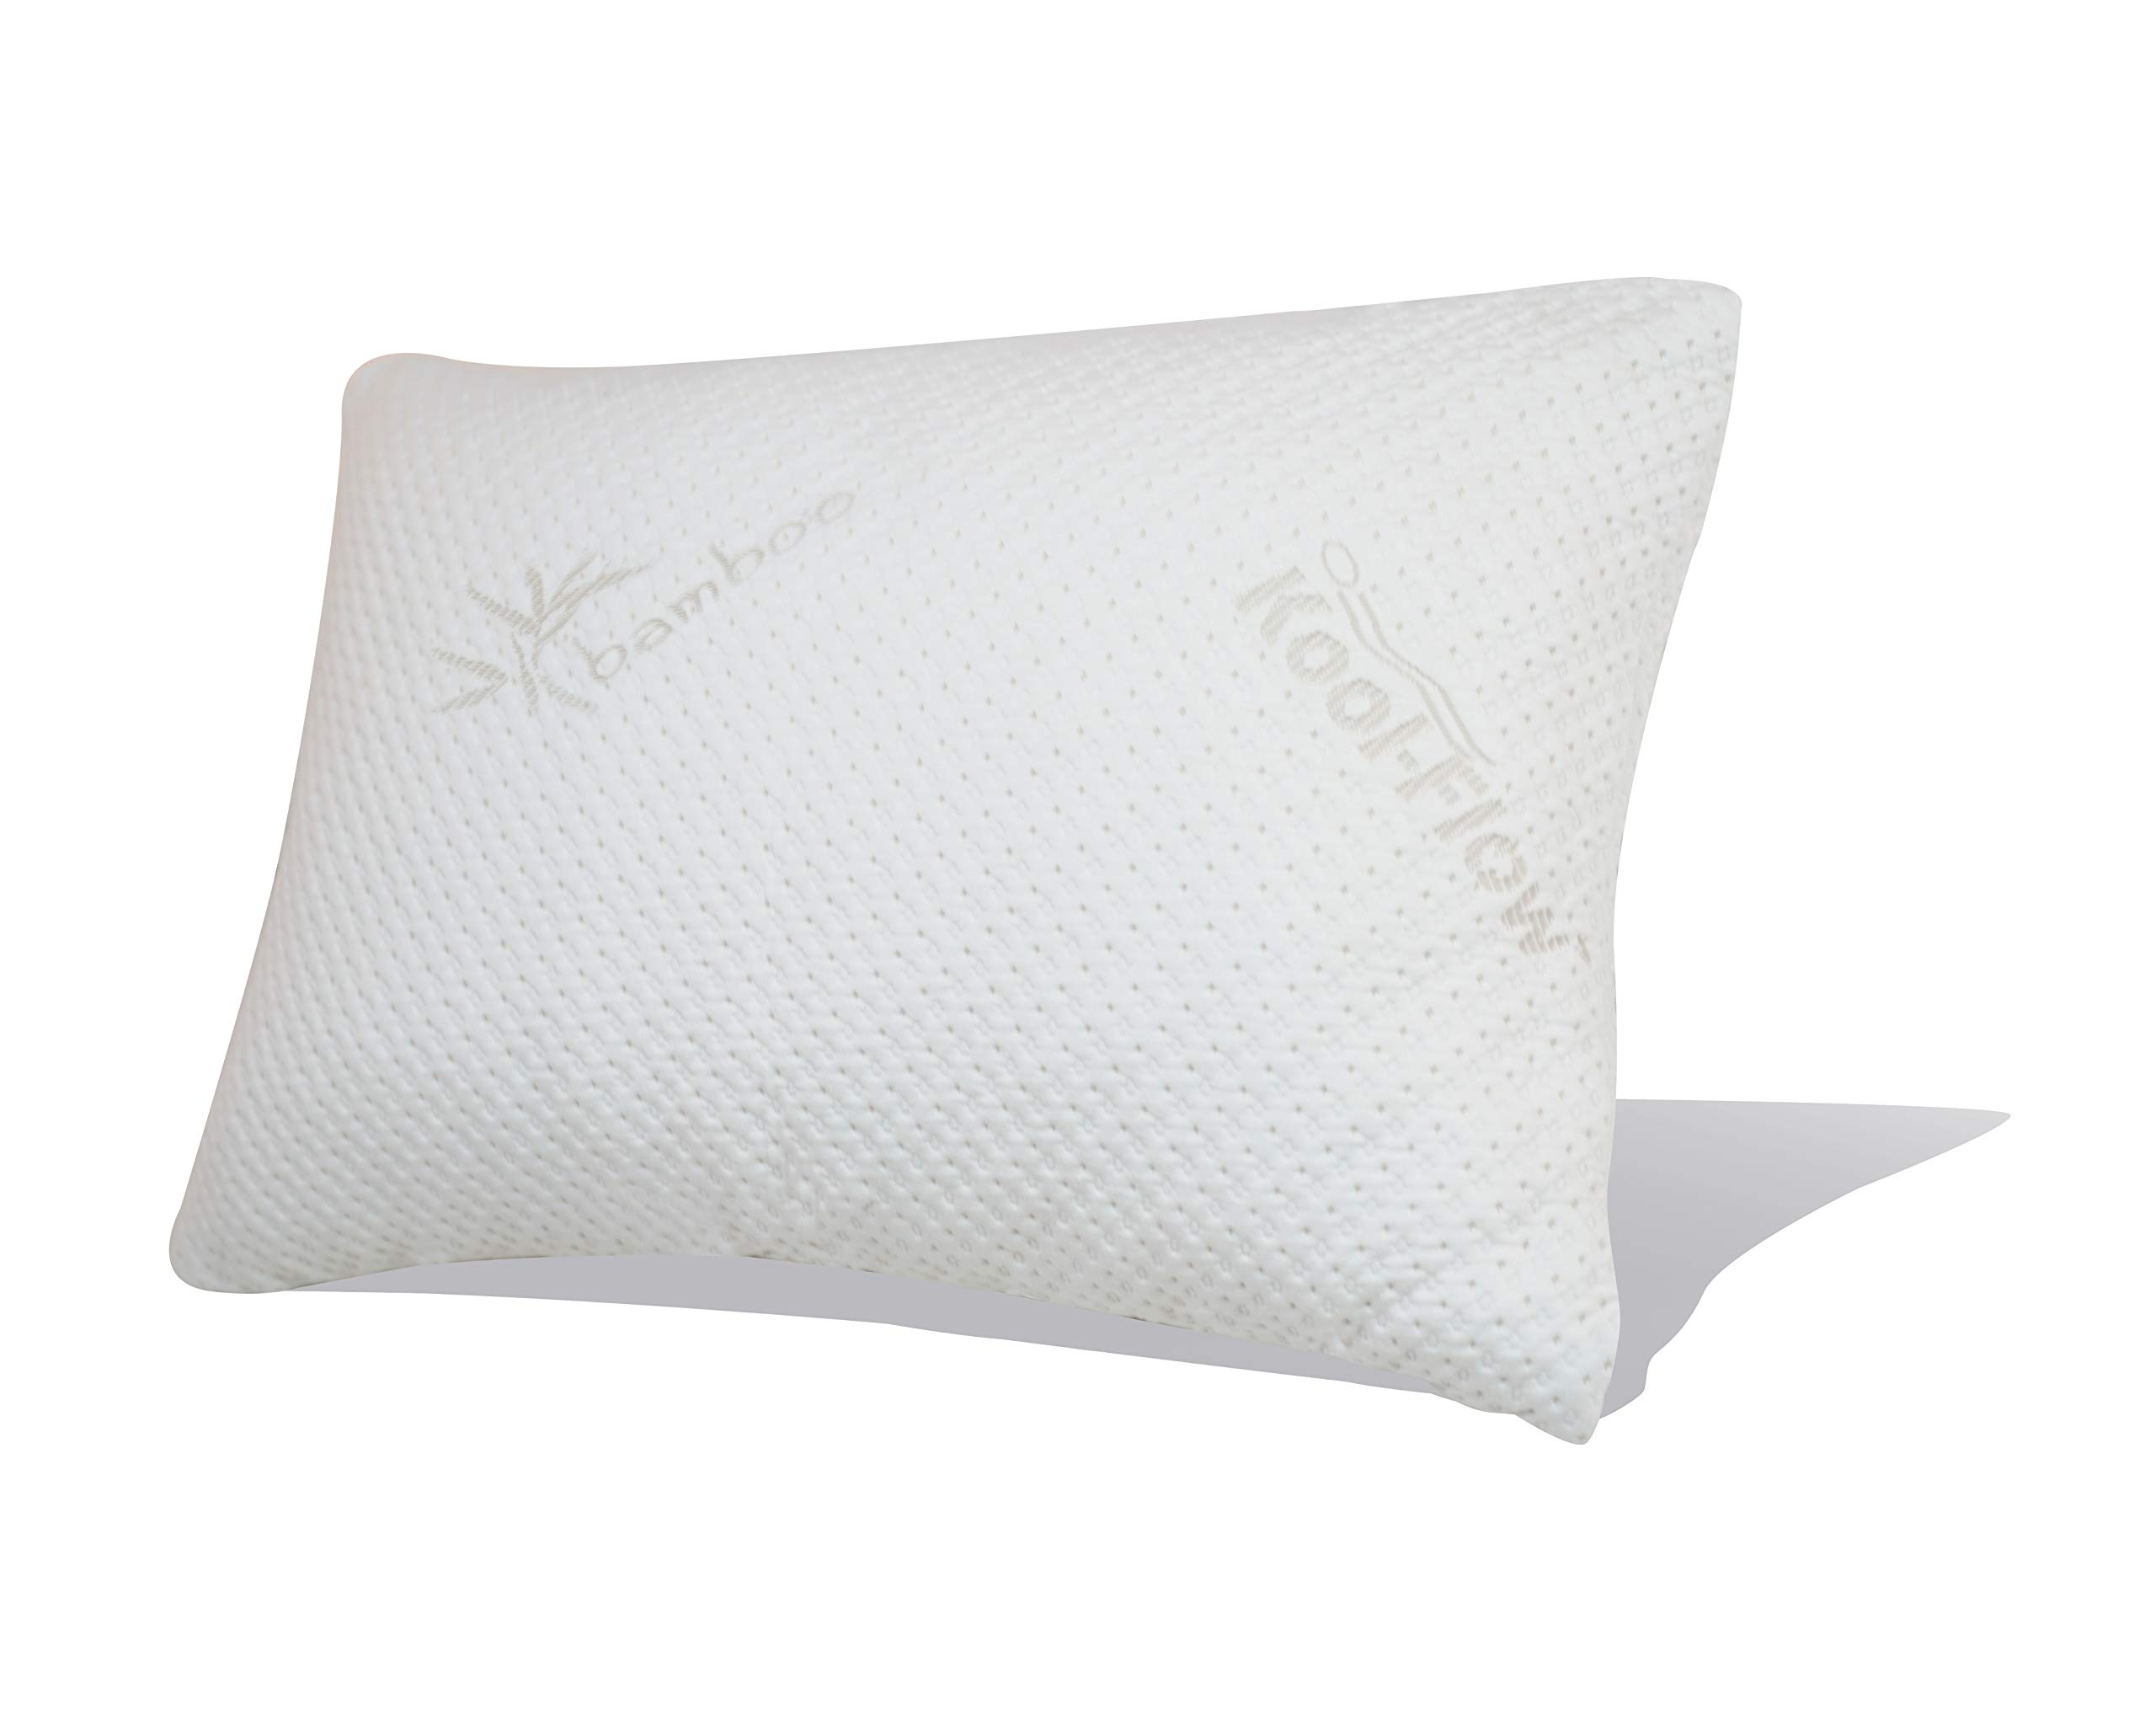 Snuggle-Pedic Original Ultra-Luxury Bamboo Shredded Memory Foam Combination Pillow With Best Breathable Kool-Flow Hypoallergenic Bed Pillow Outer Fabric Covering - Made In The USA - Queen (No Zippers)